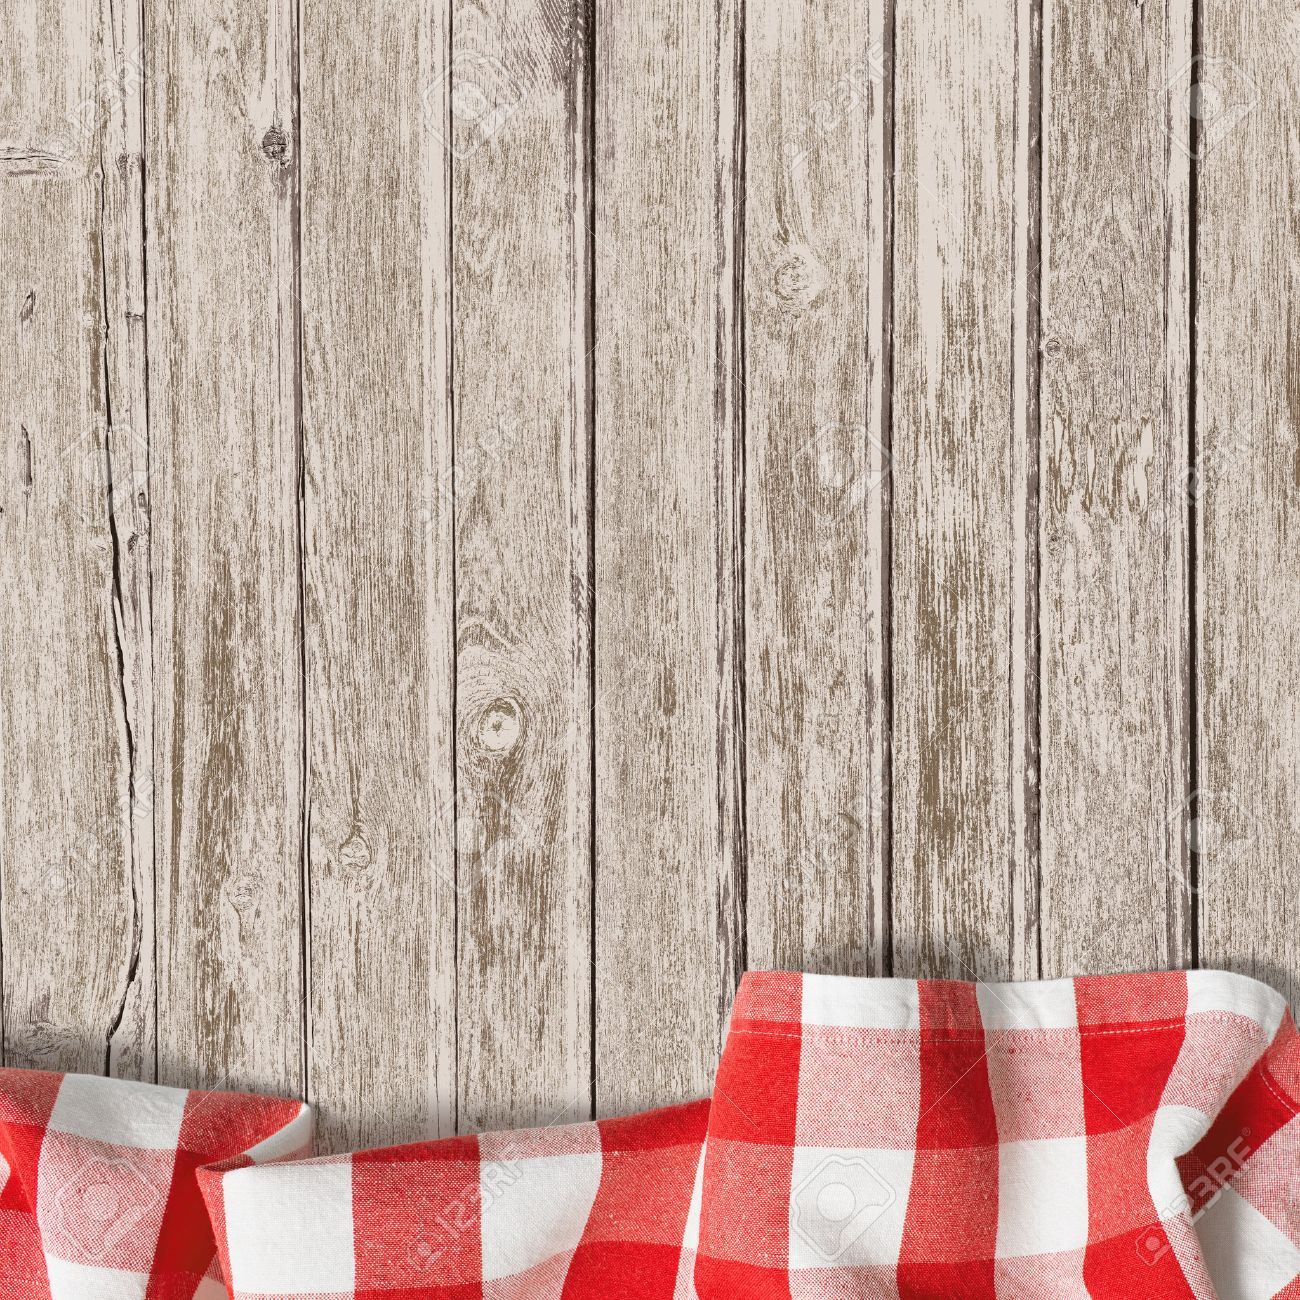 Wooden dining table background - Dining Table Top View Old Wooden Table With Red Picnic Tablecloth Background